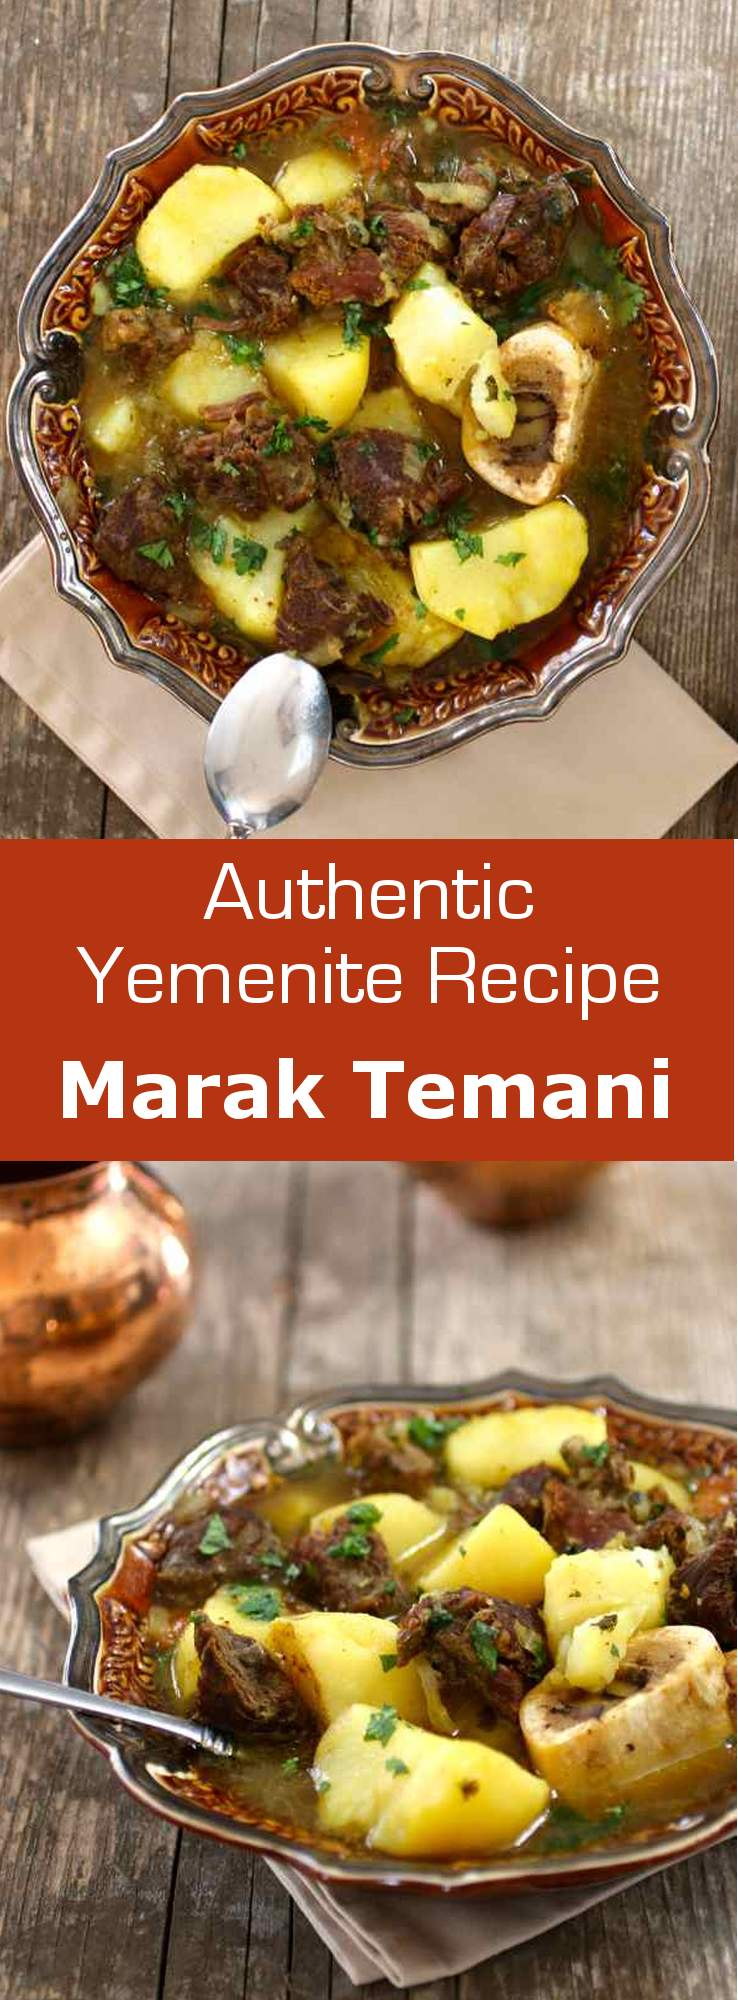 Marak Temani Traditional Yemenite Recipe 196 Flavors